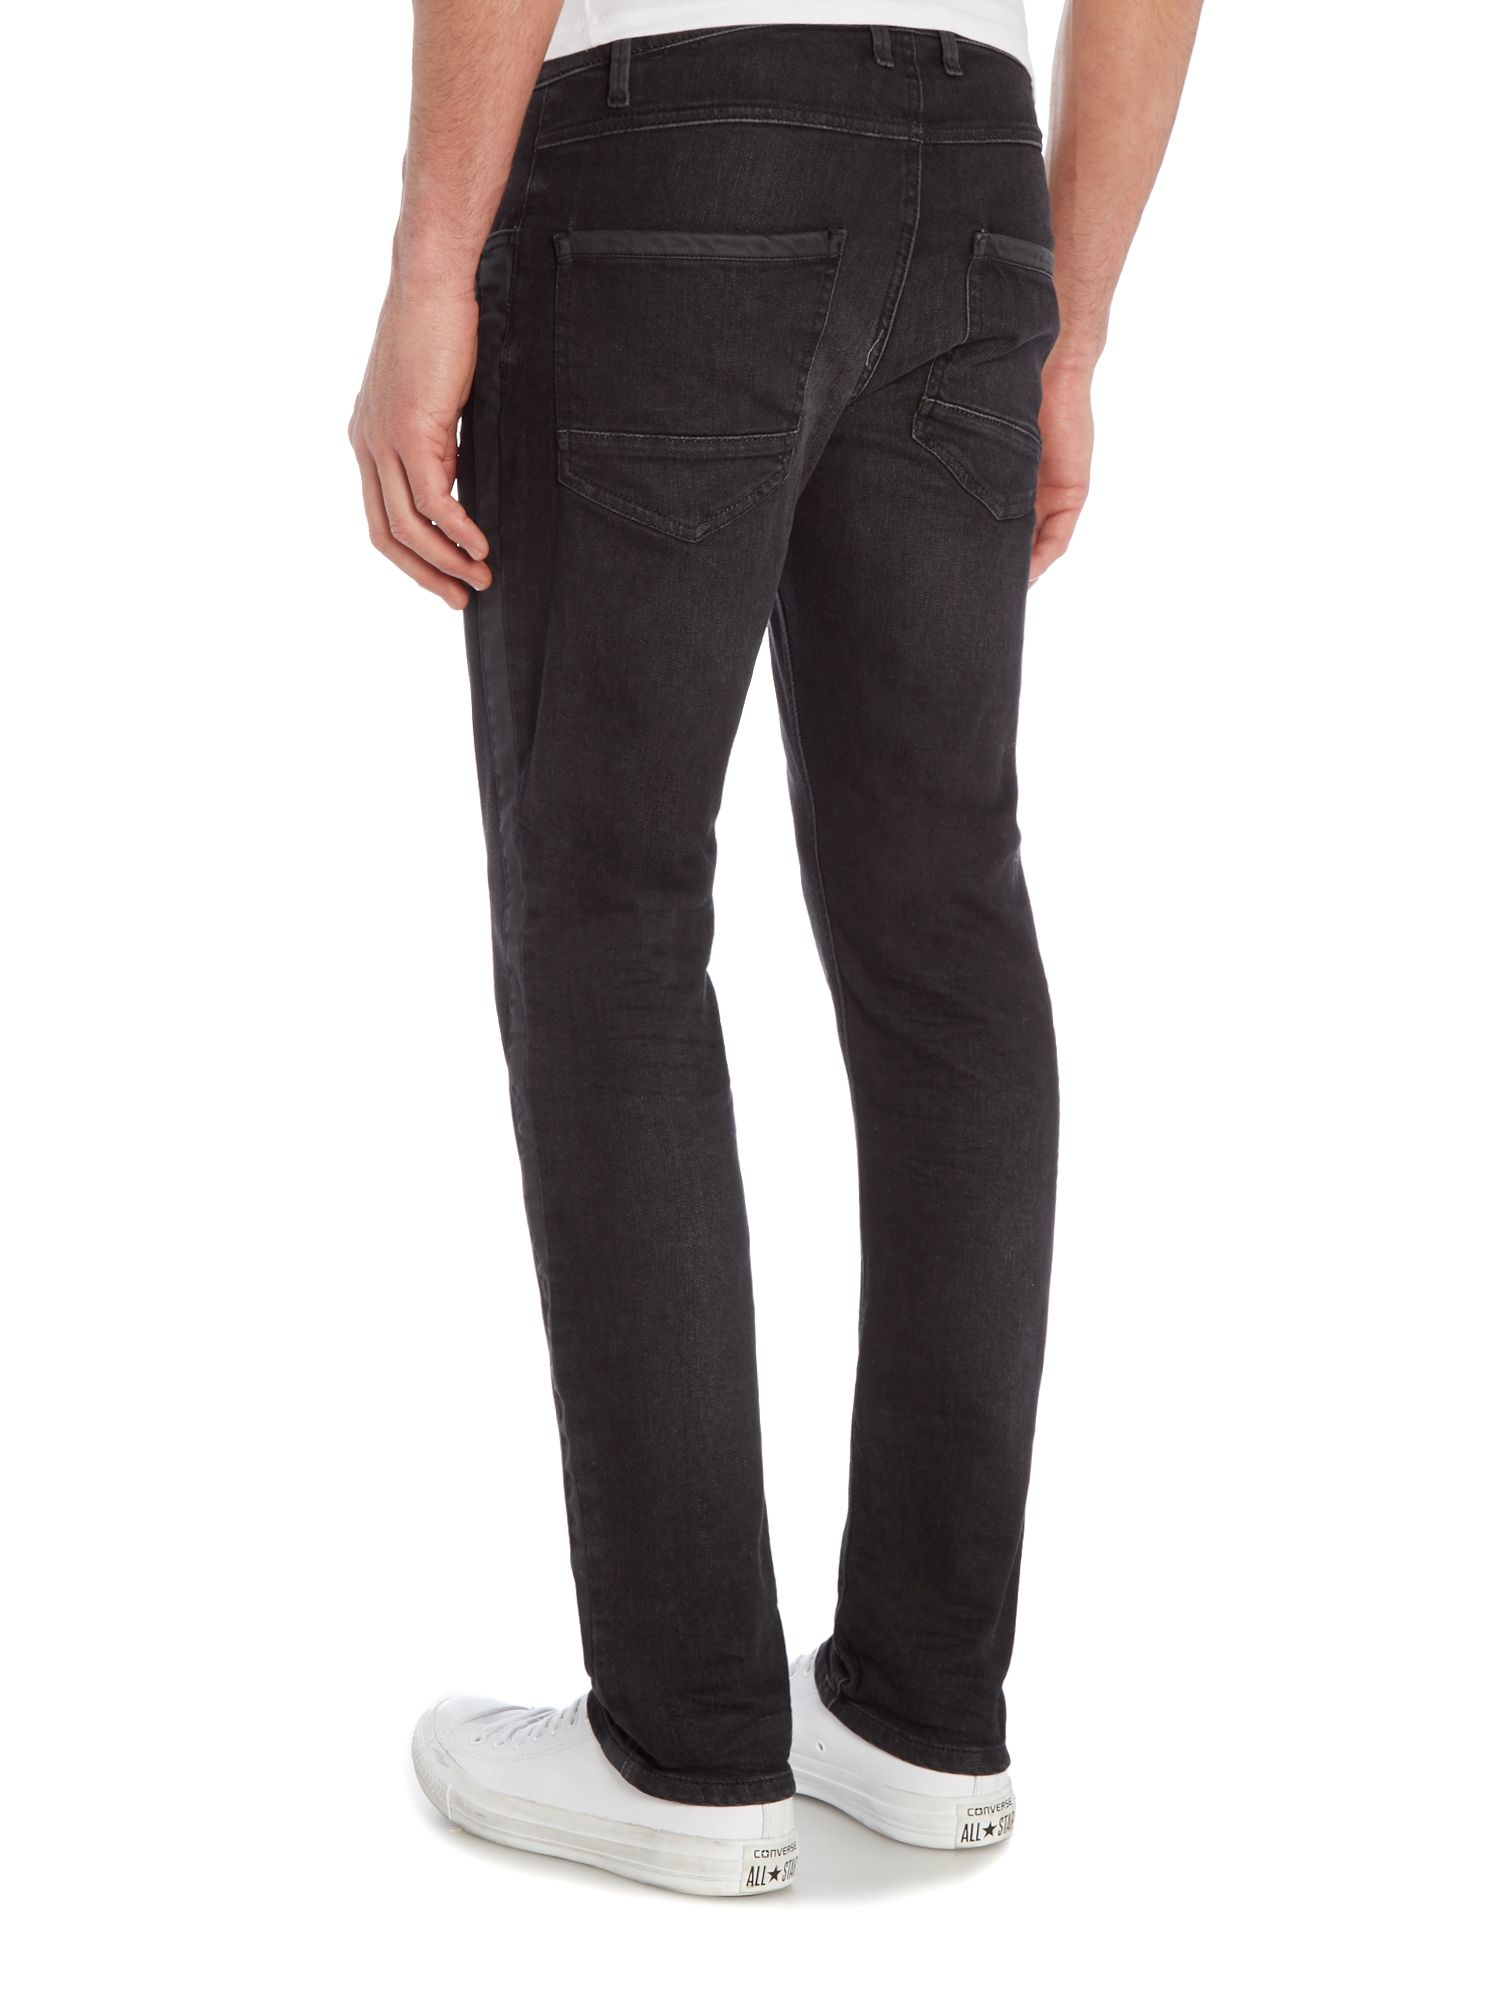 Mens black slim fit jeans – Your Denim Jeans Blog